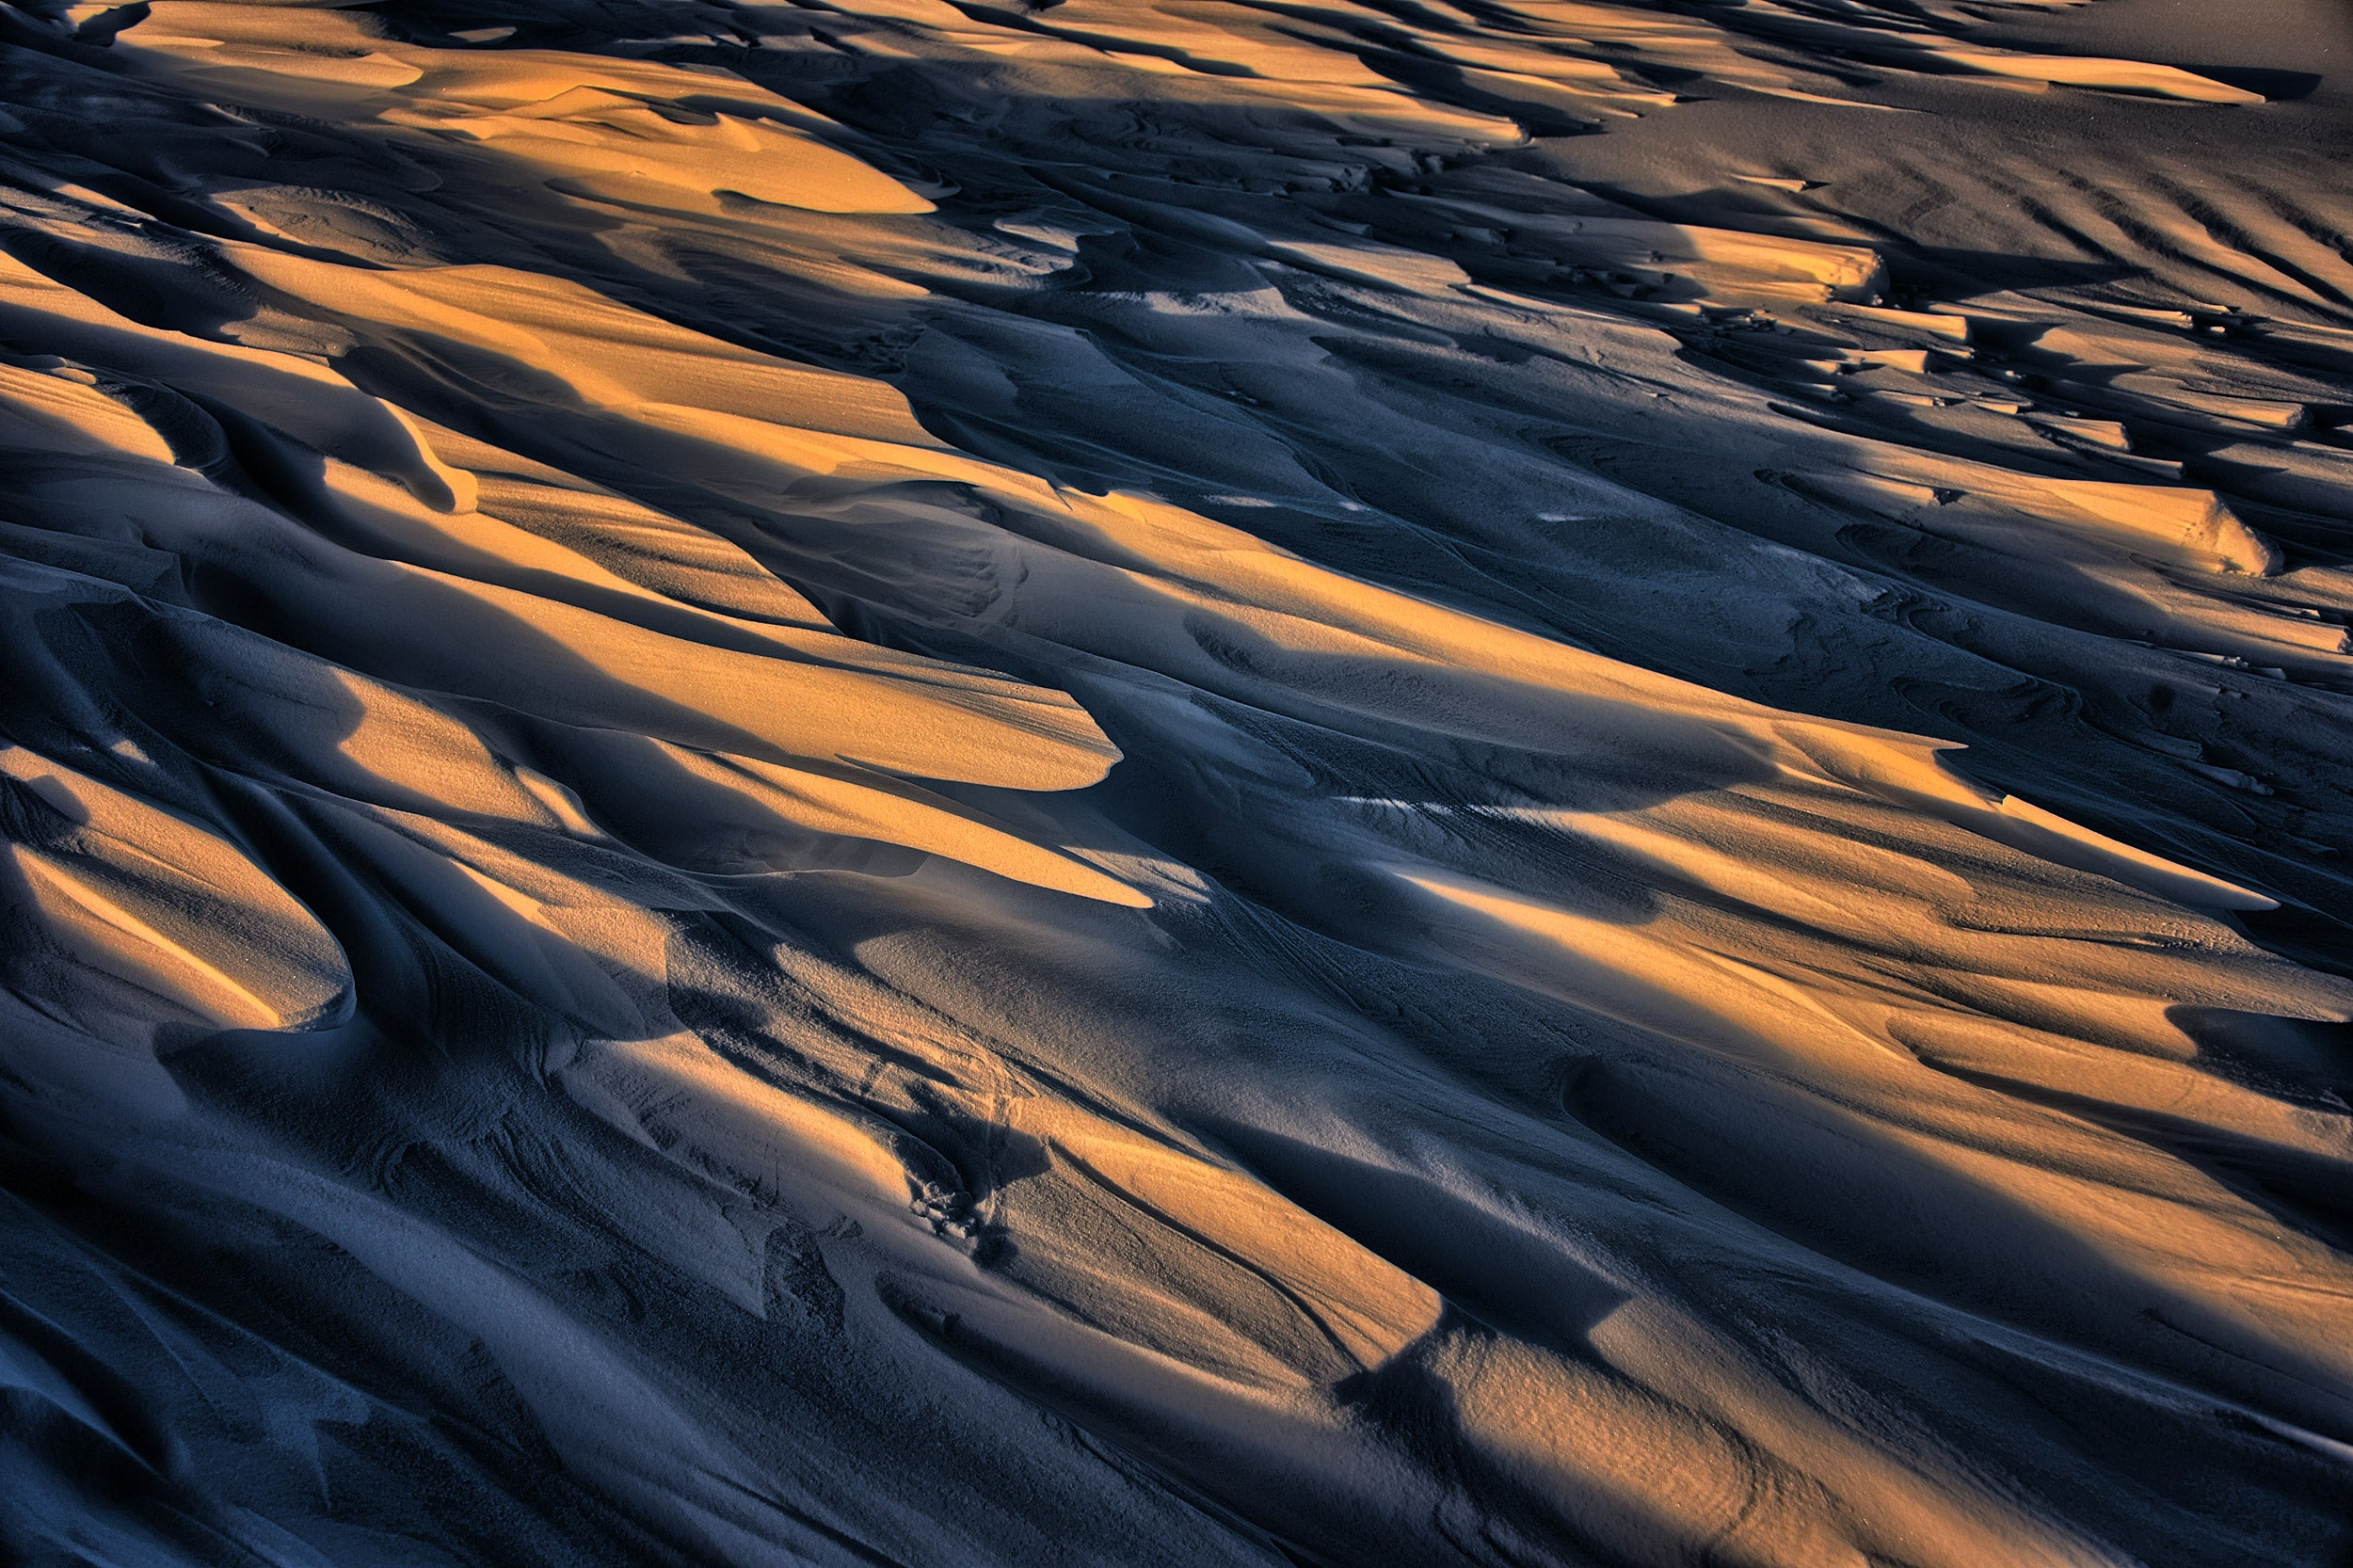 Dune-like formations sculpted by the wind called Sastrugi cast shadows on ice.